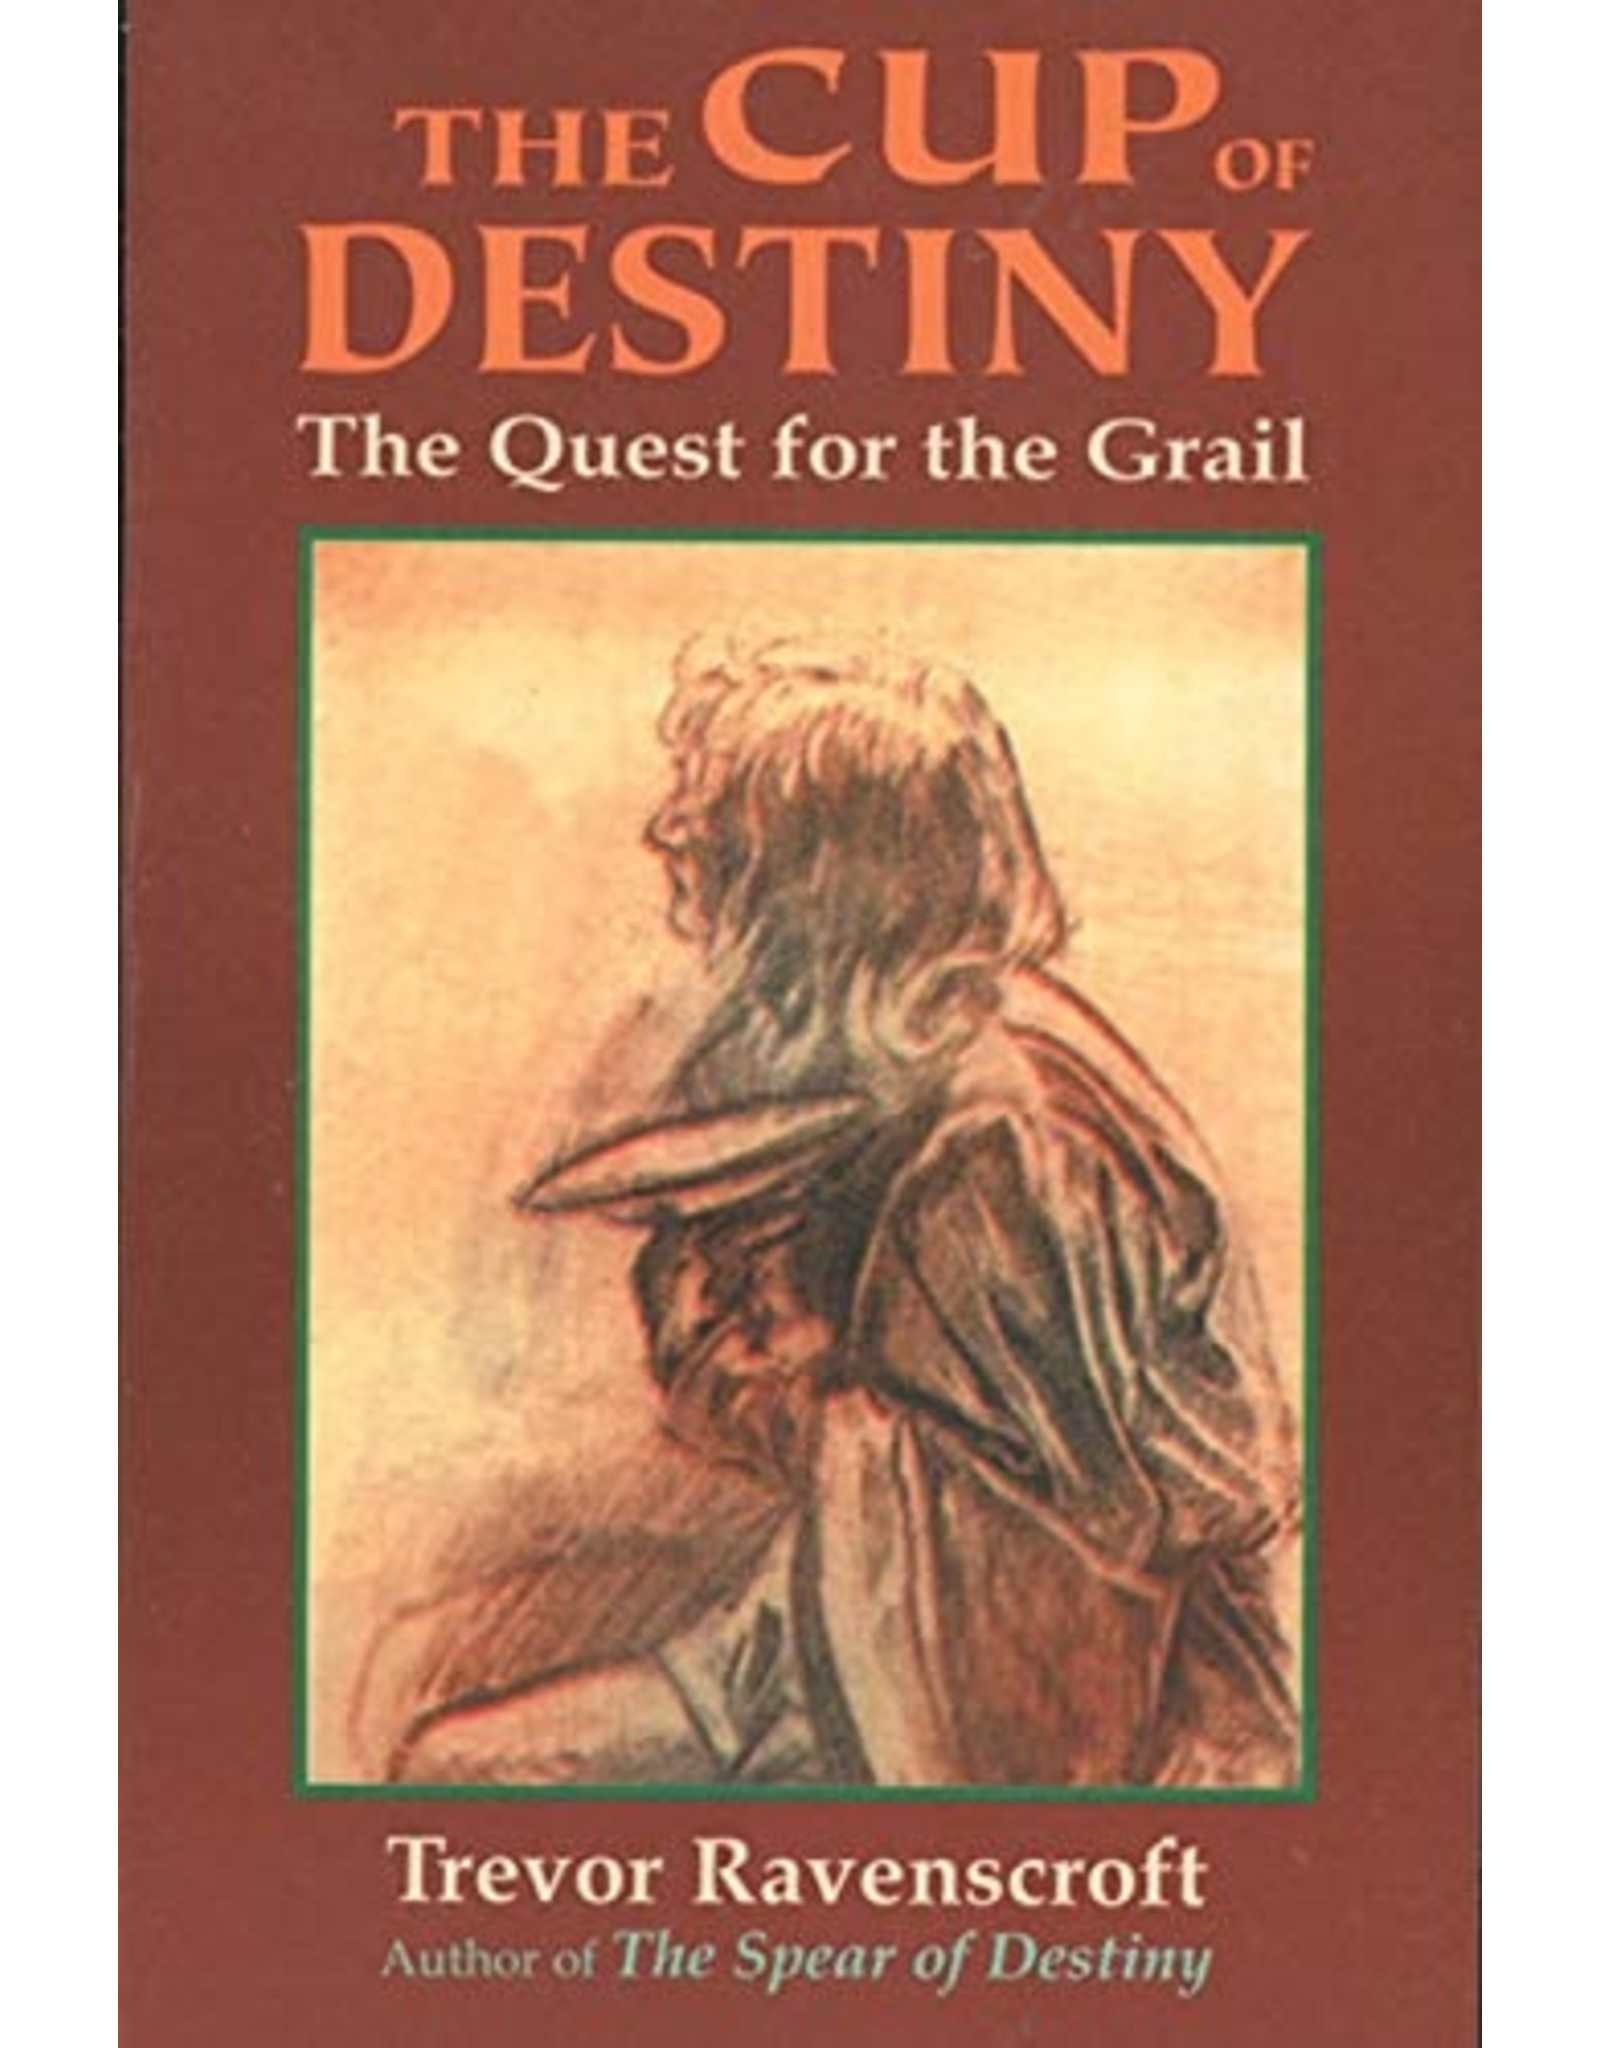 The Cup of Destiny: The Quest for the Grail